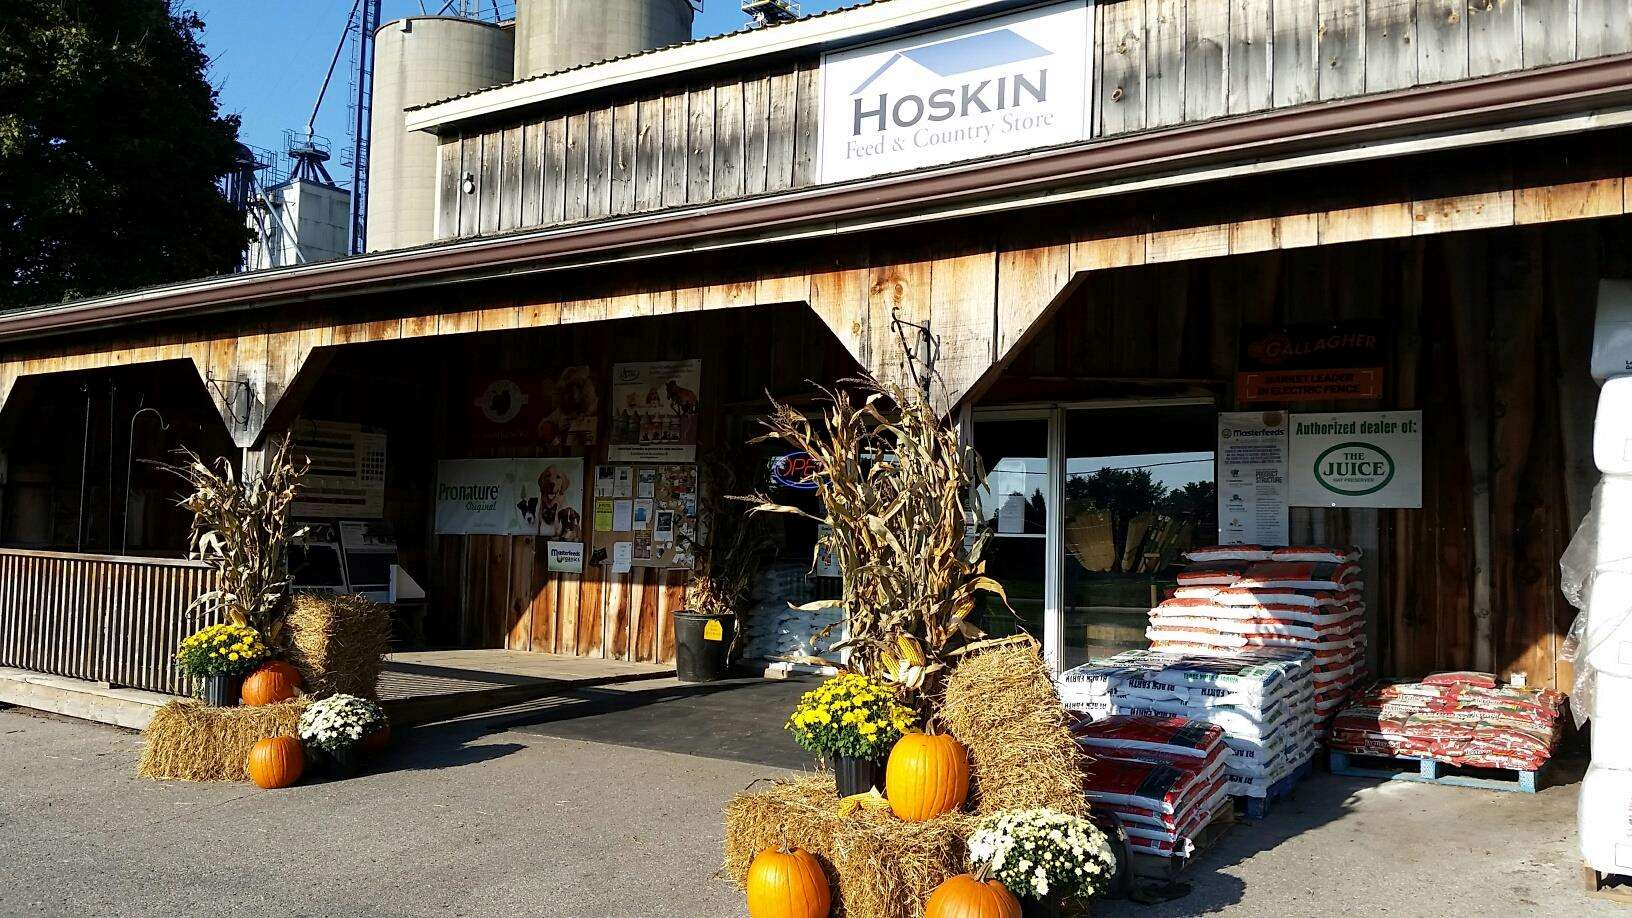 Hoskin Feed And Country Store